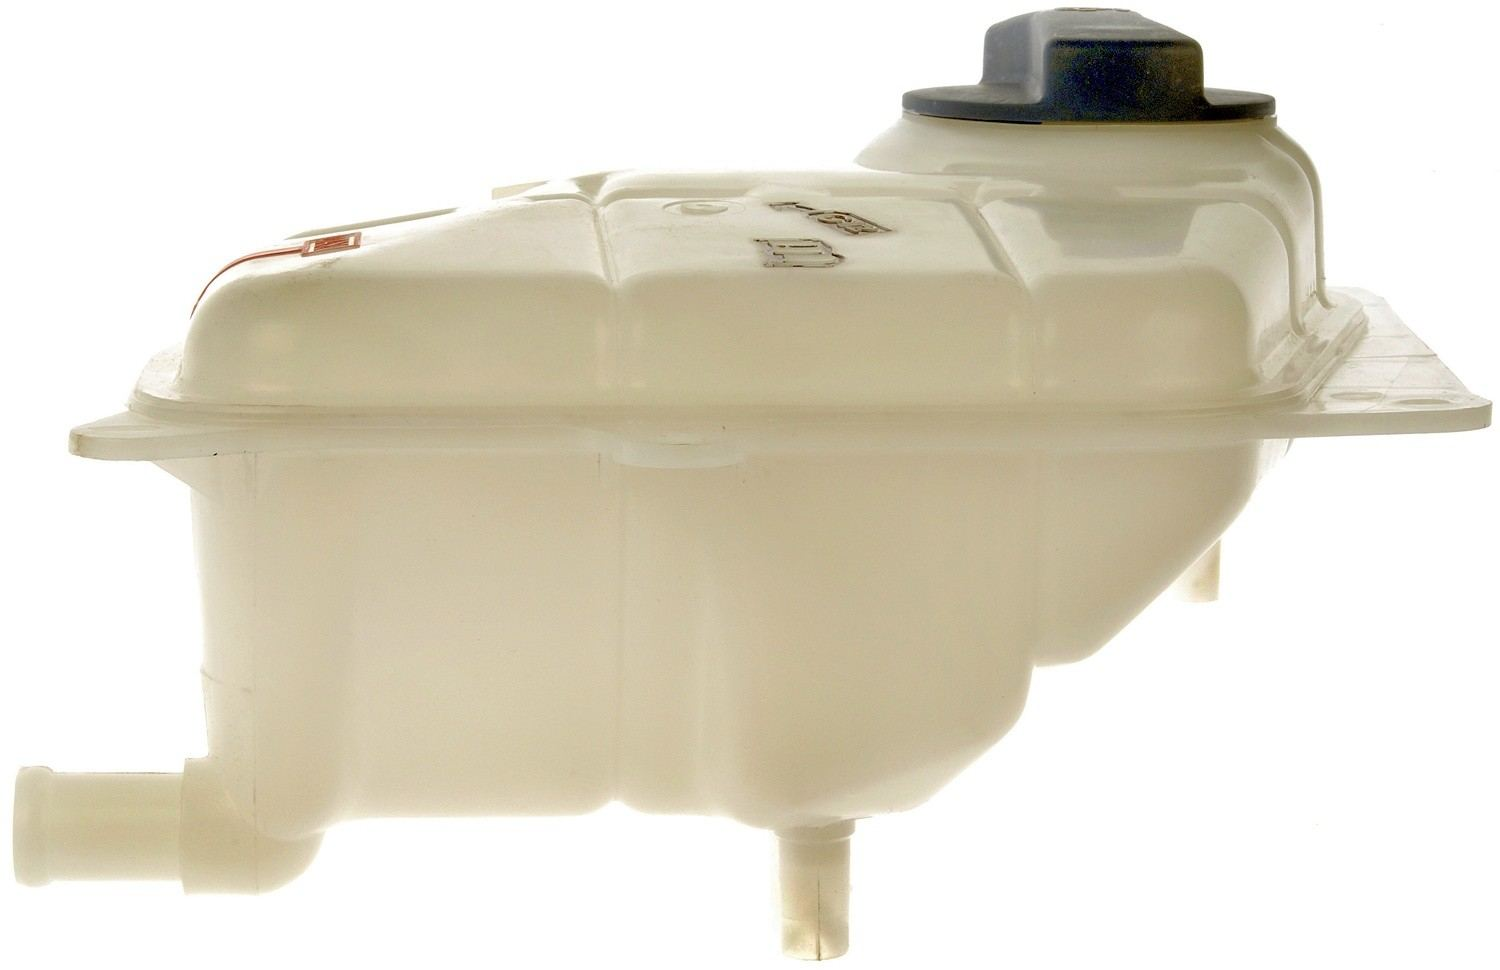 DORMAN OE SOLUTIONS - Engine Coolant Recovery Tank - DRE 603-703